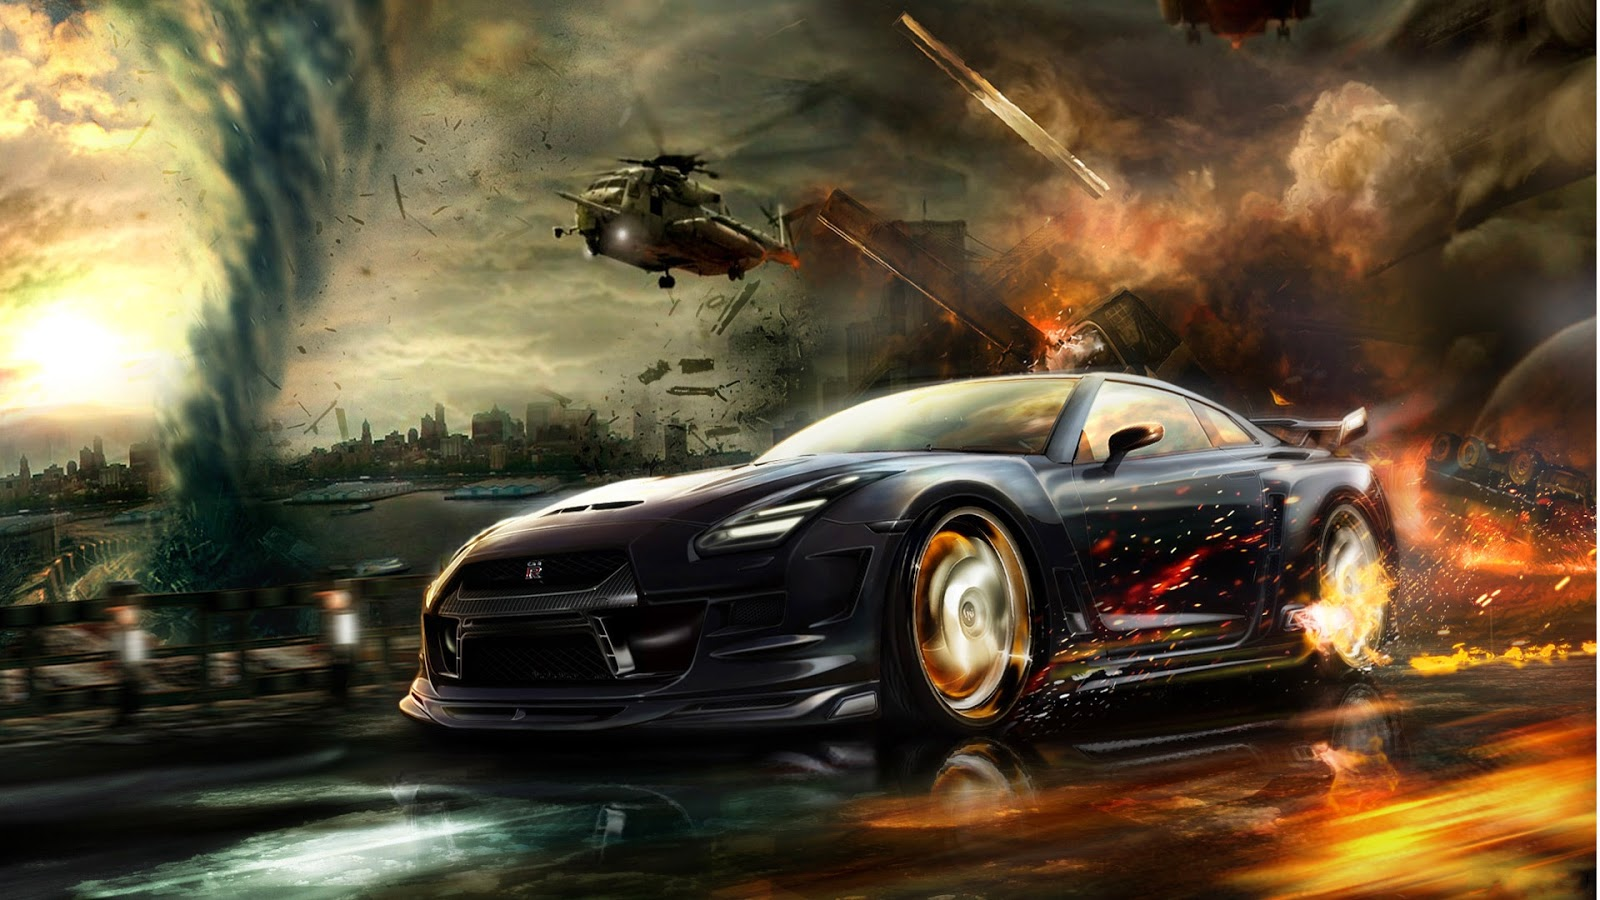 Sports Car In Fire Background Wallpapers